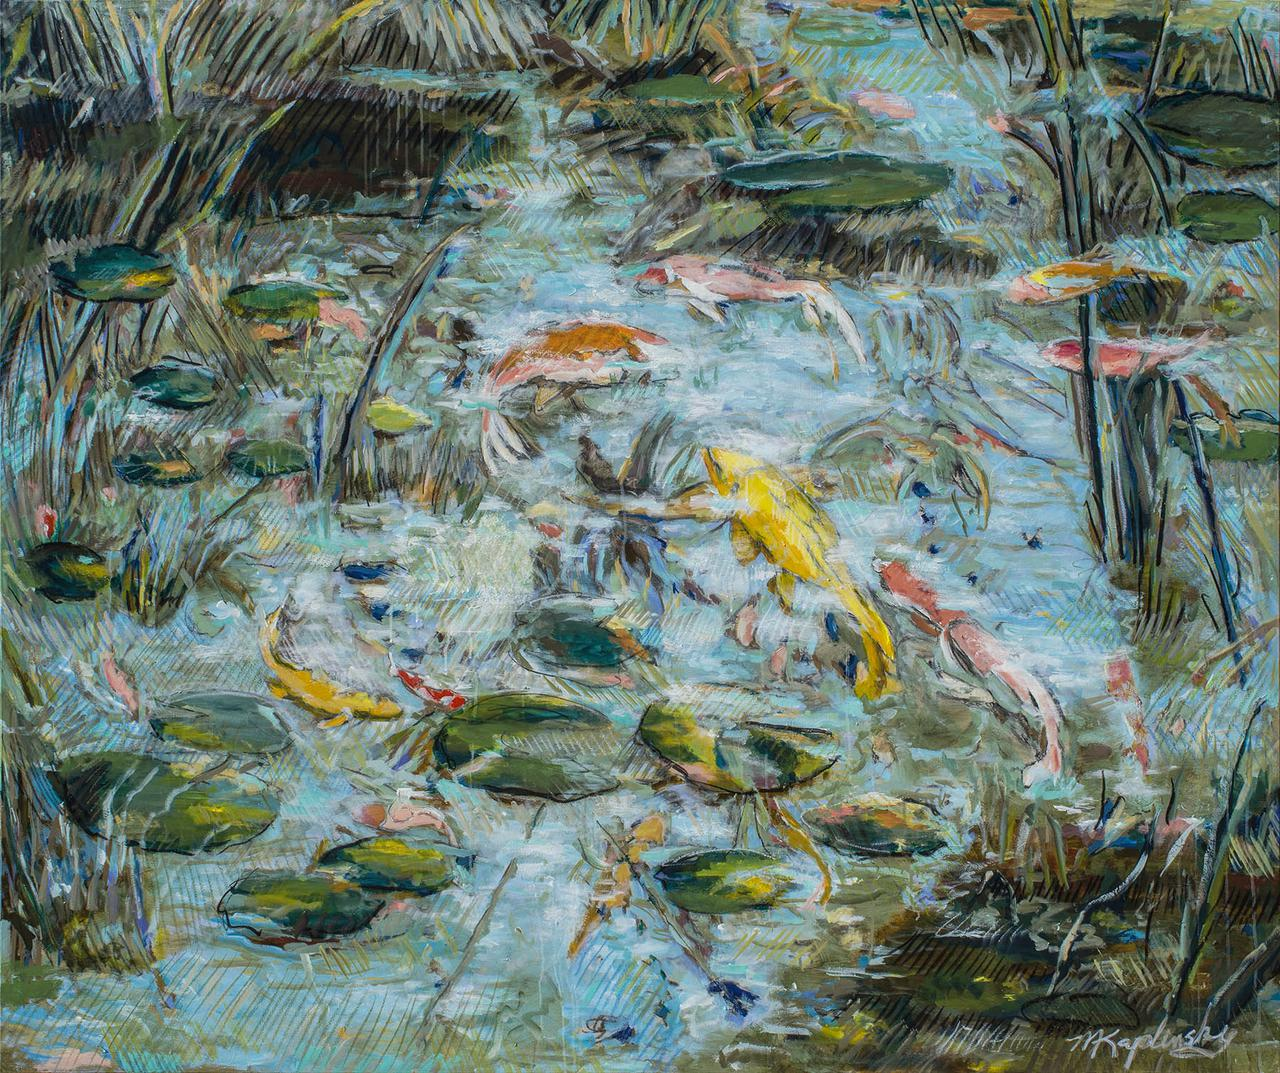 Arboretum Koi Pond acrylic on canvas fine art piece by Matt Kaplinsky 60x72